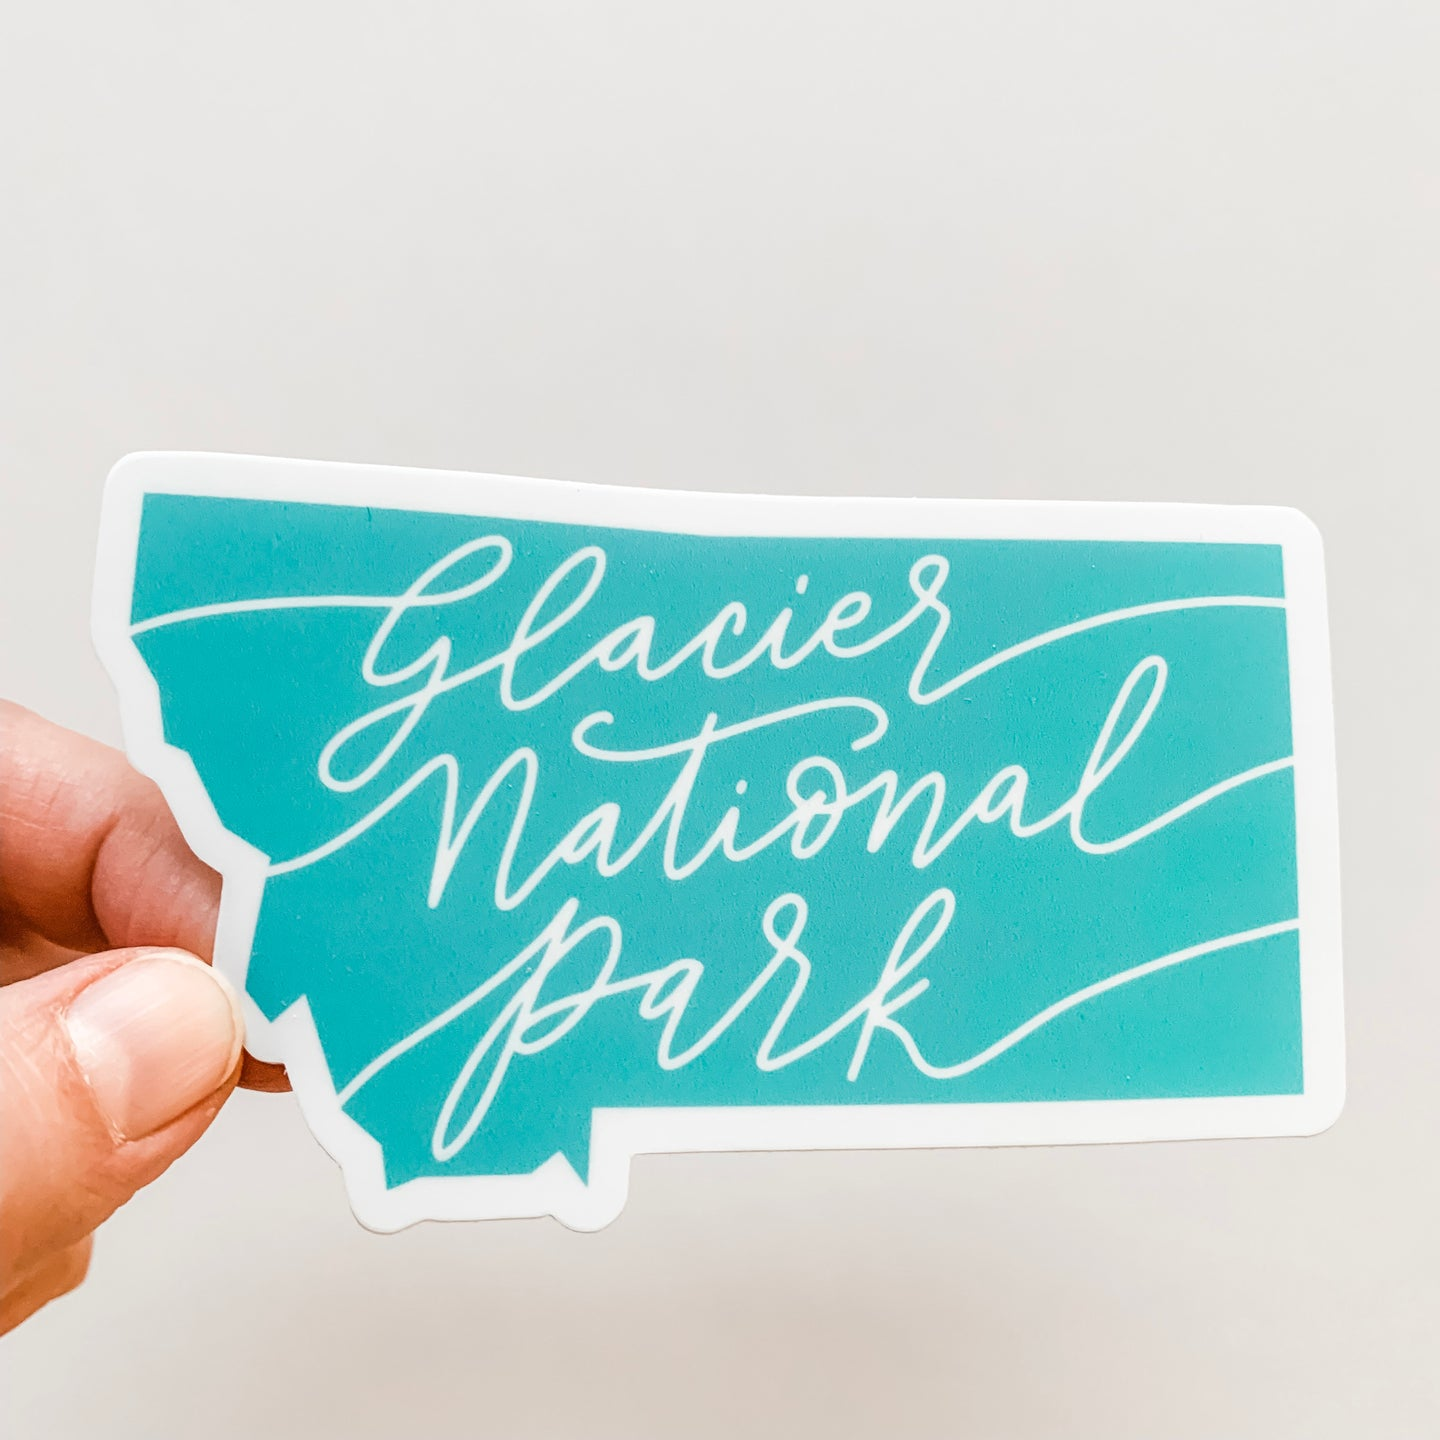 Montana Glacier National Park Mint Green State Decal Sticker